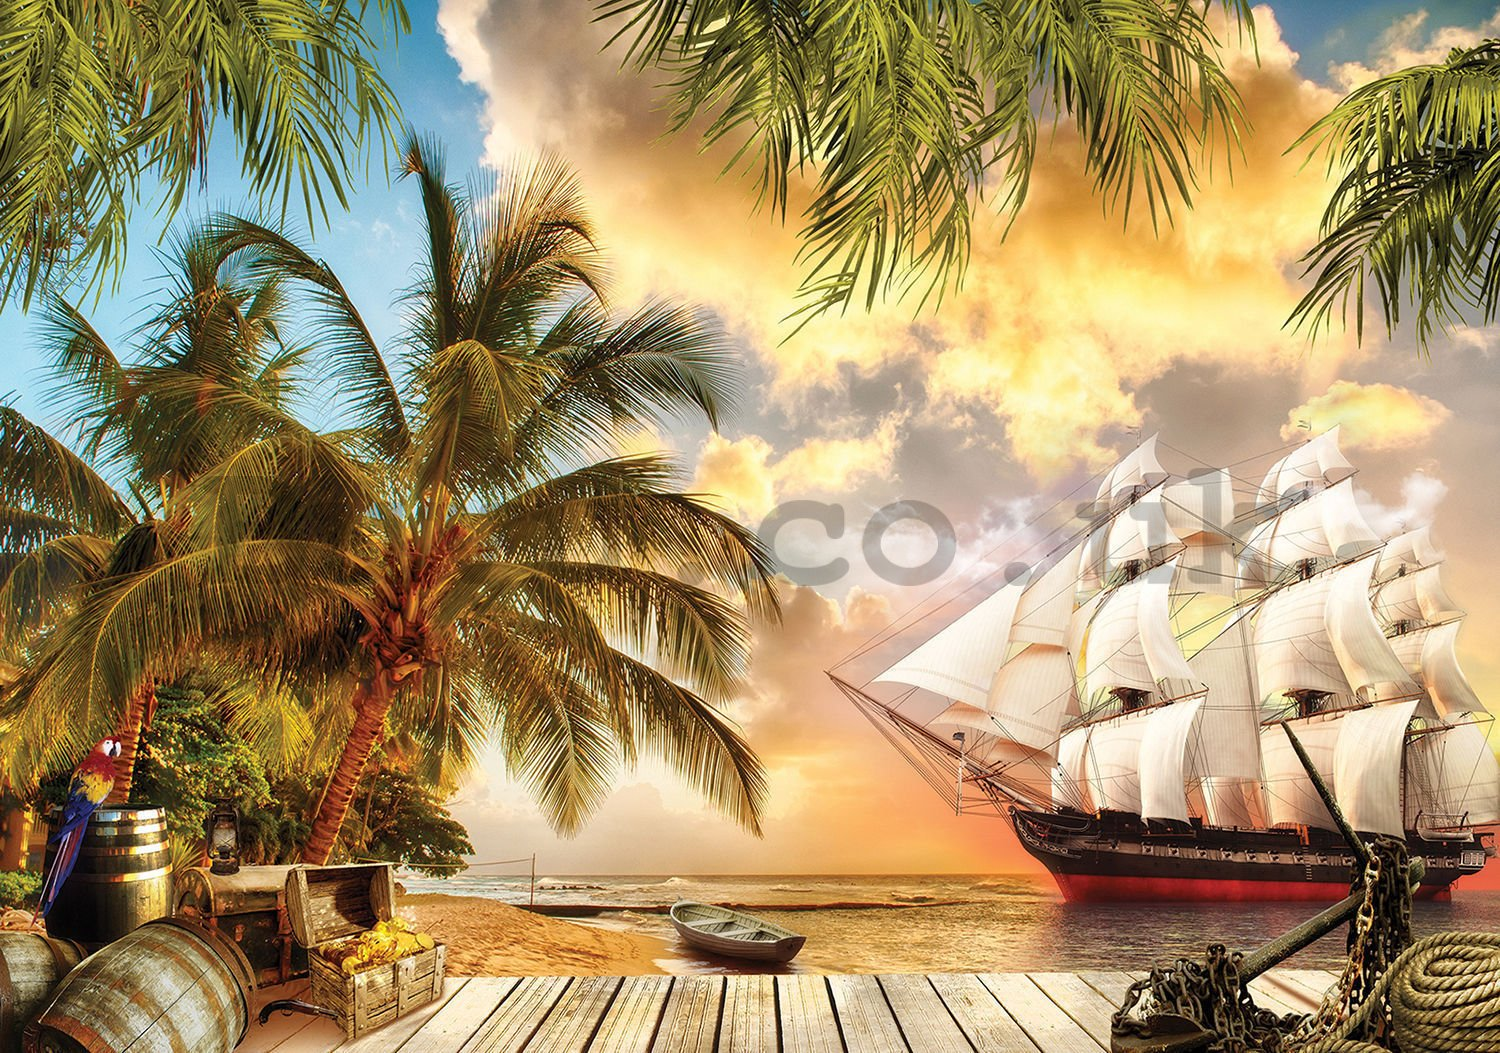 Wall mural vlies: Sailboat in paradise - 254x368 cm